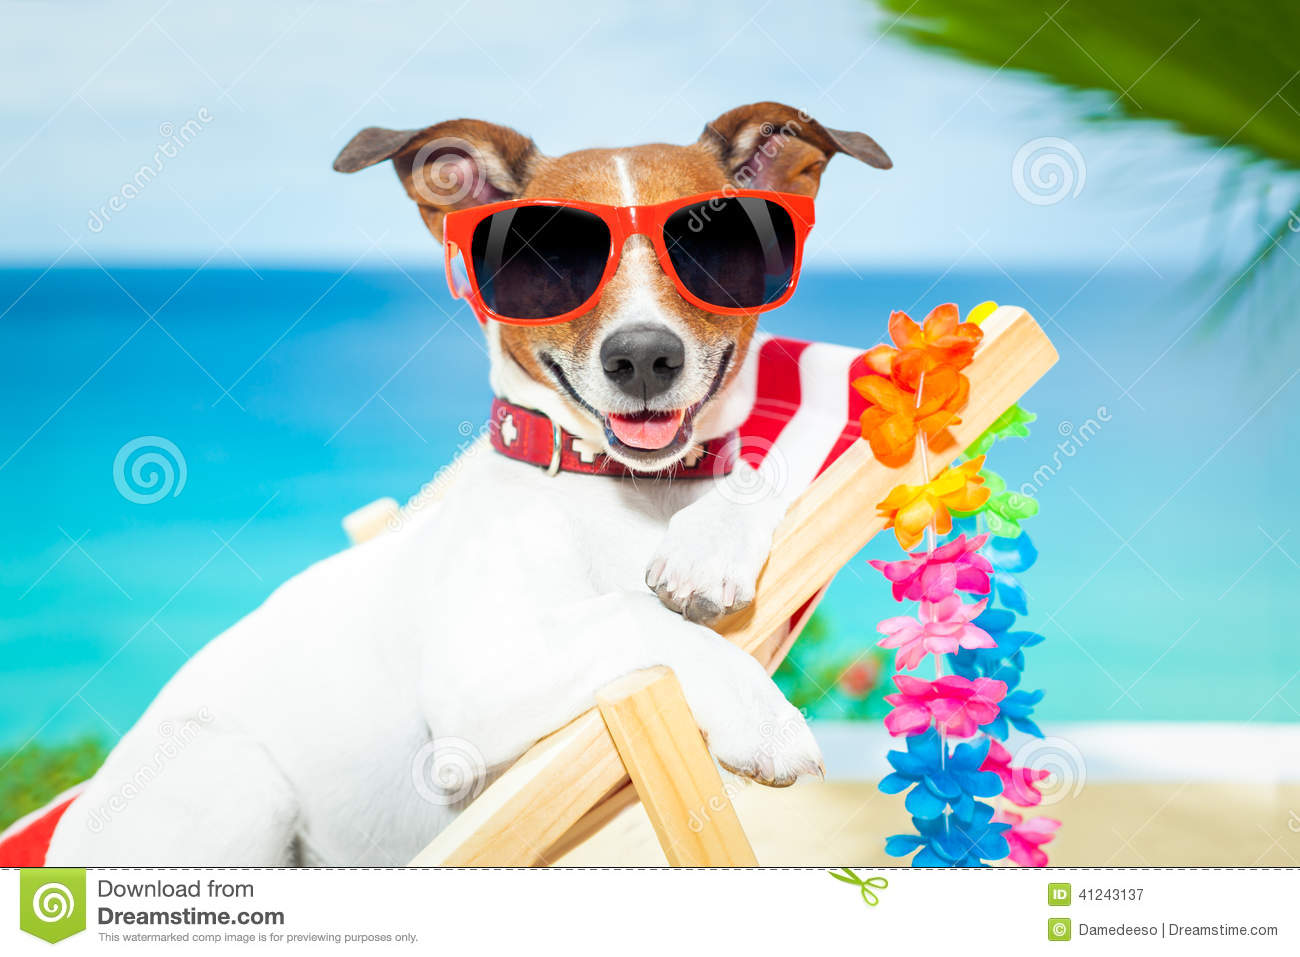 Dog Summer Vacation Stock Photo - Image: 41243137 Relaxing Dogs